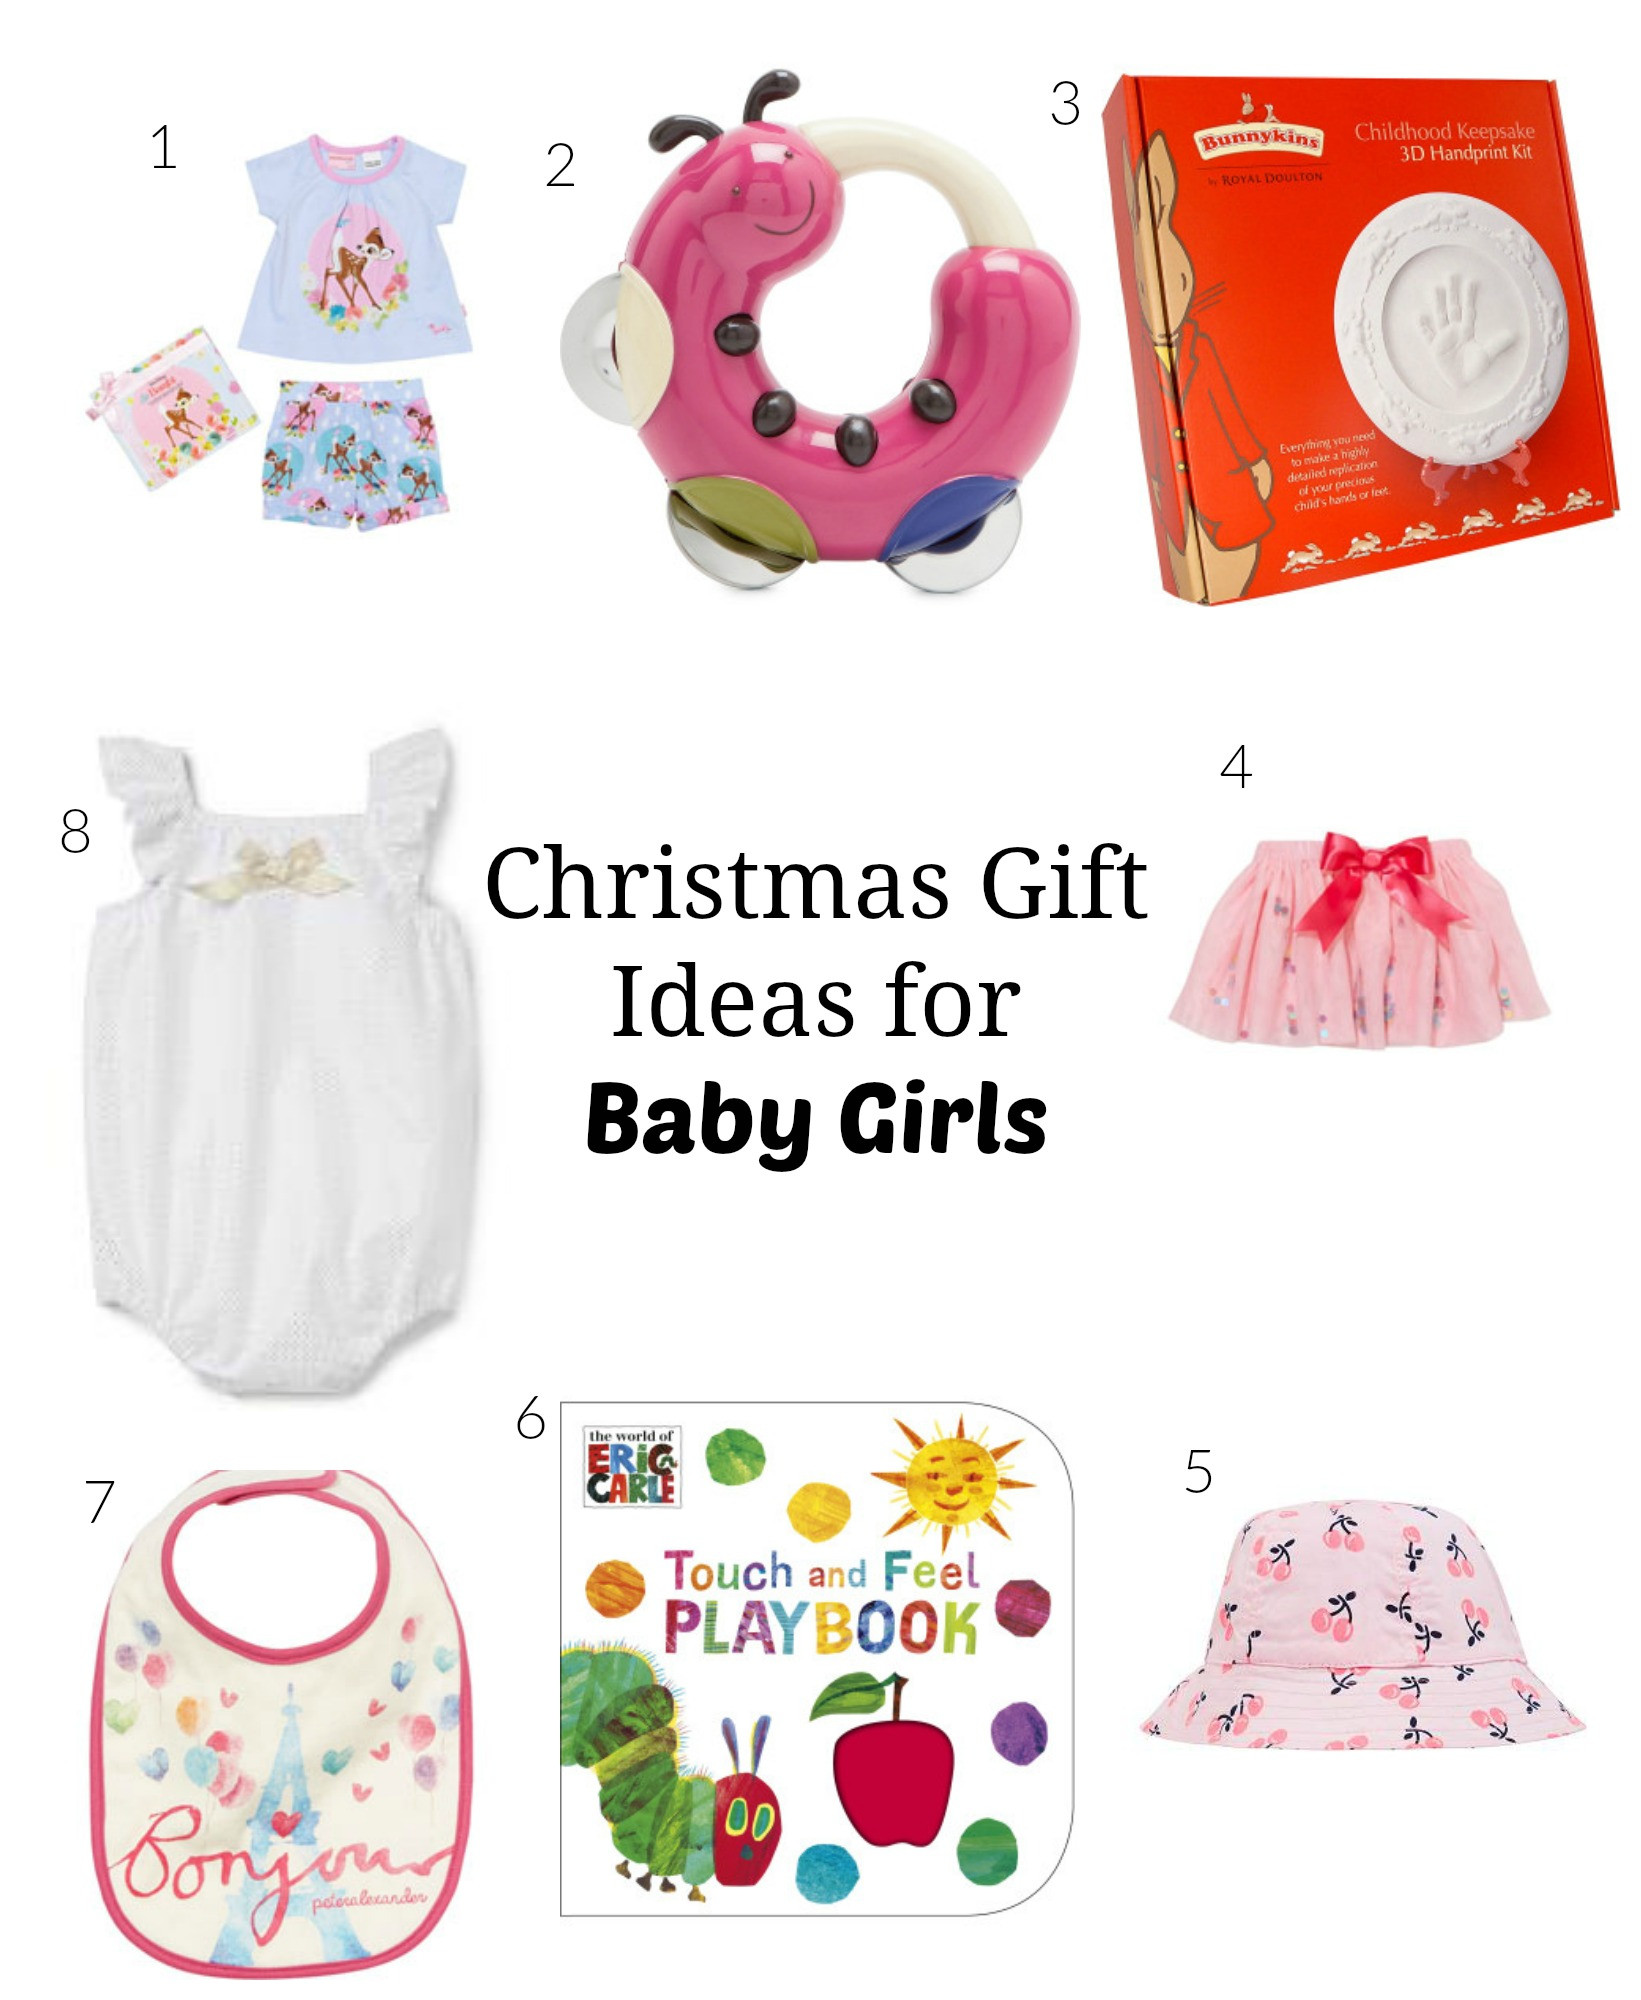 Christmas Gift Ideas From Baby  Go Ask Mum Christmas Gifts for Baby Girls Under $40 Go